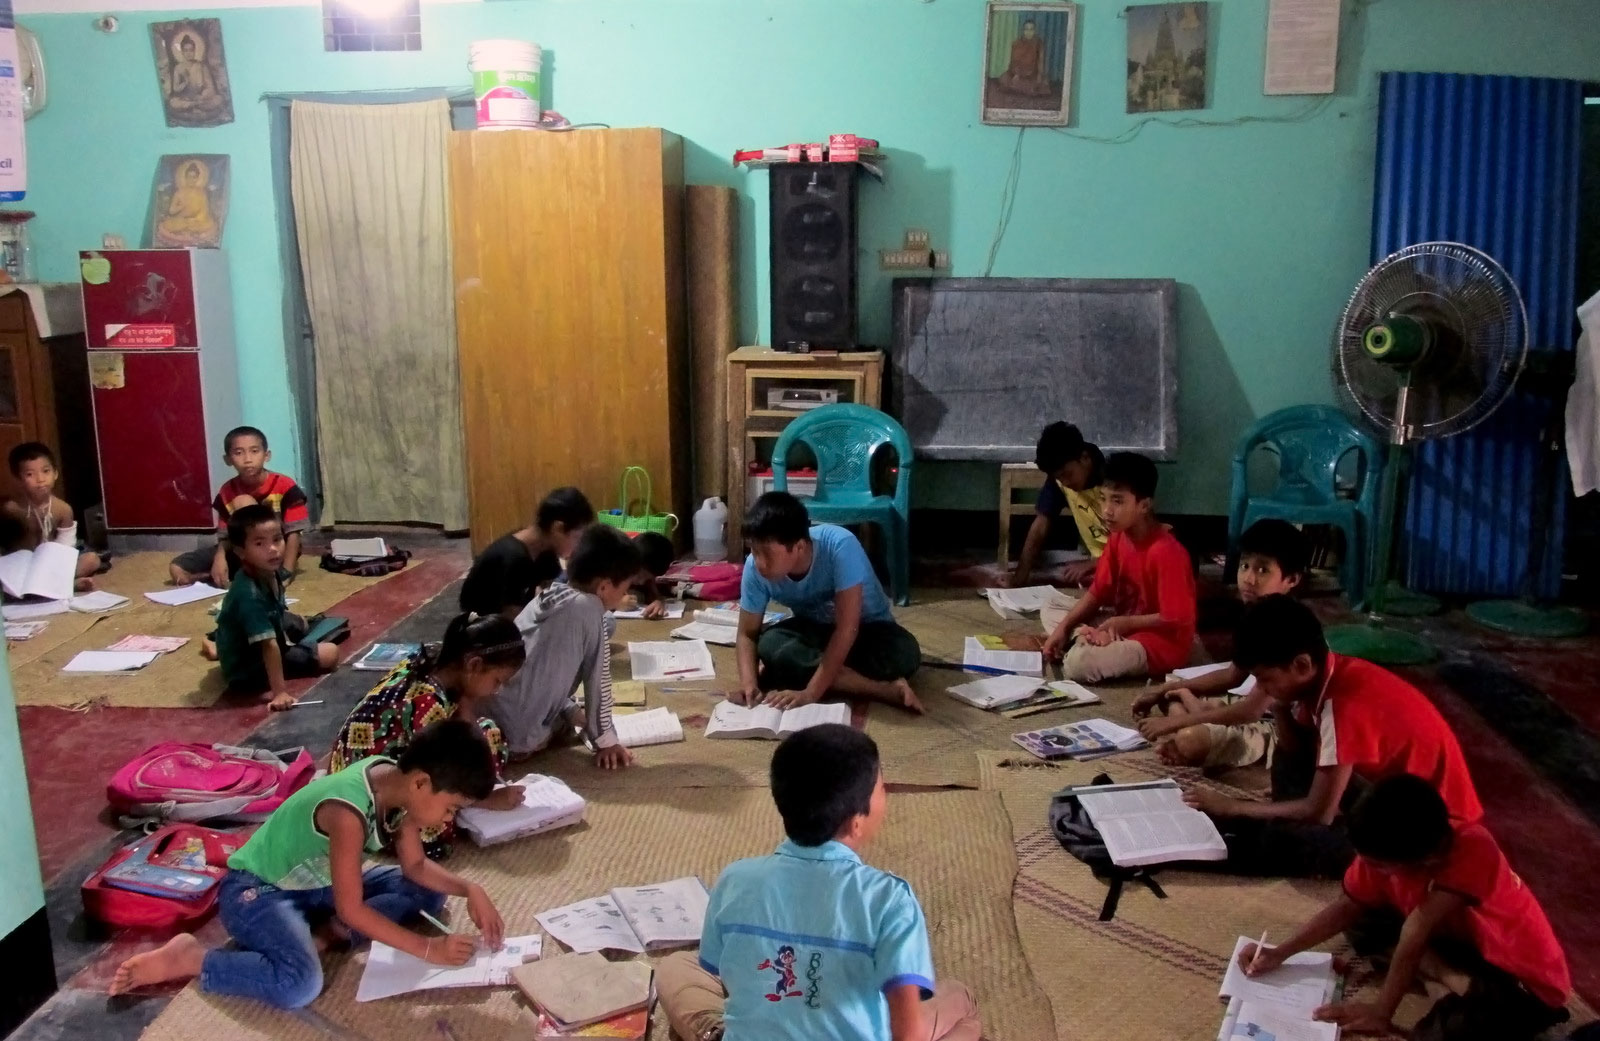 Marma students study session at the temple